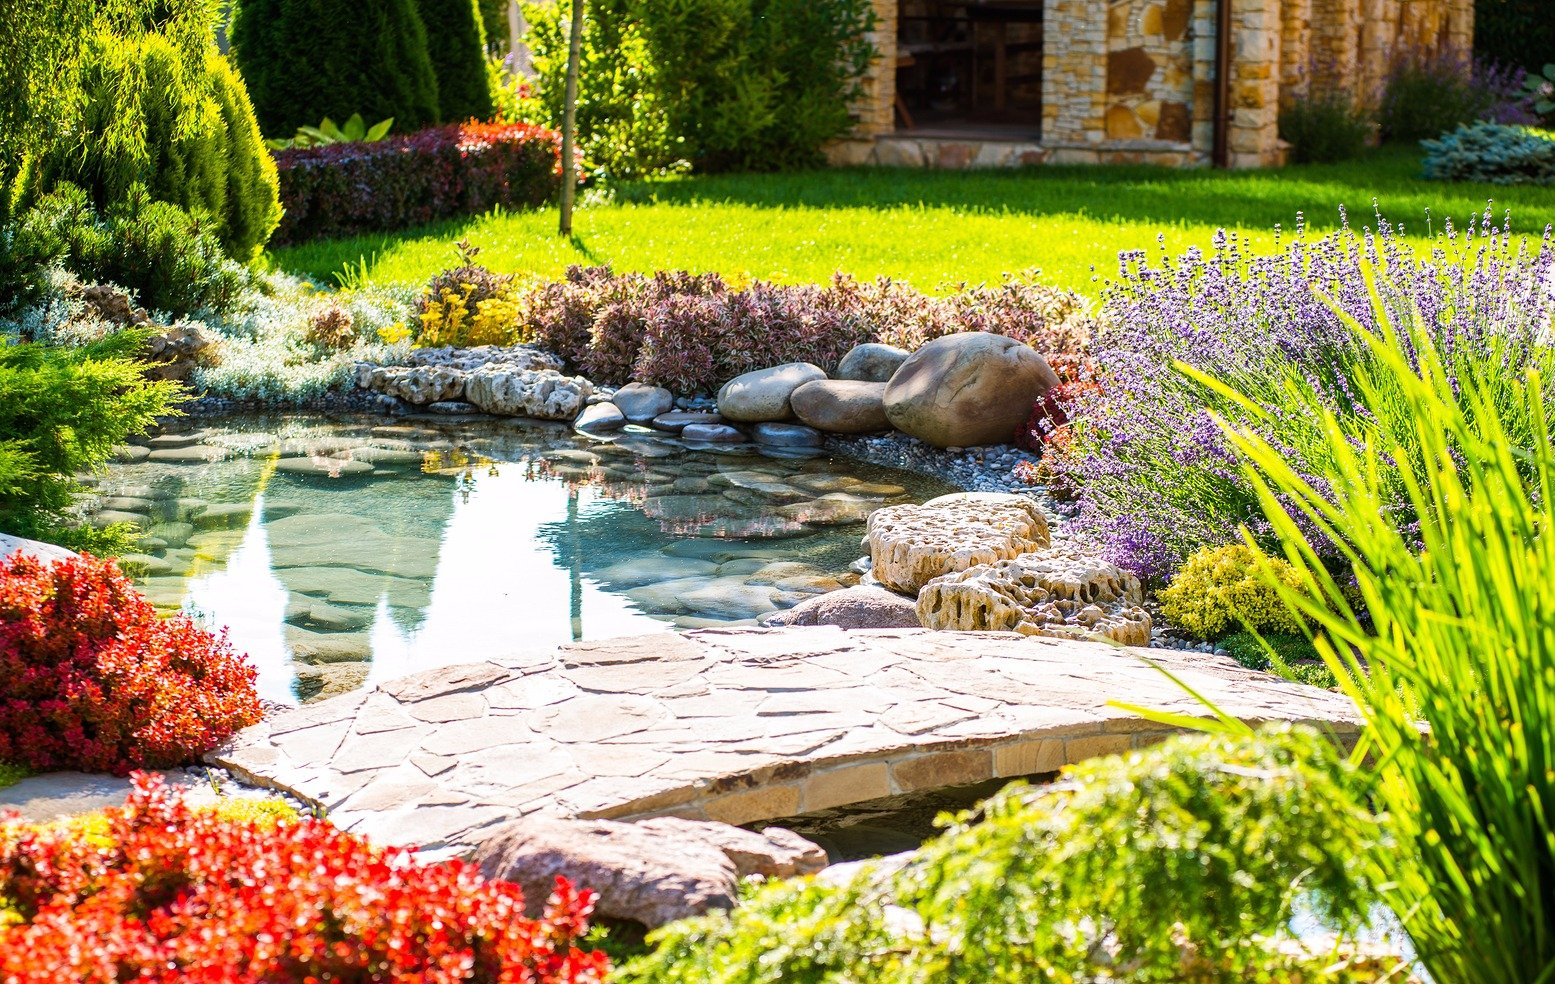 Landscape Pond with natural stone